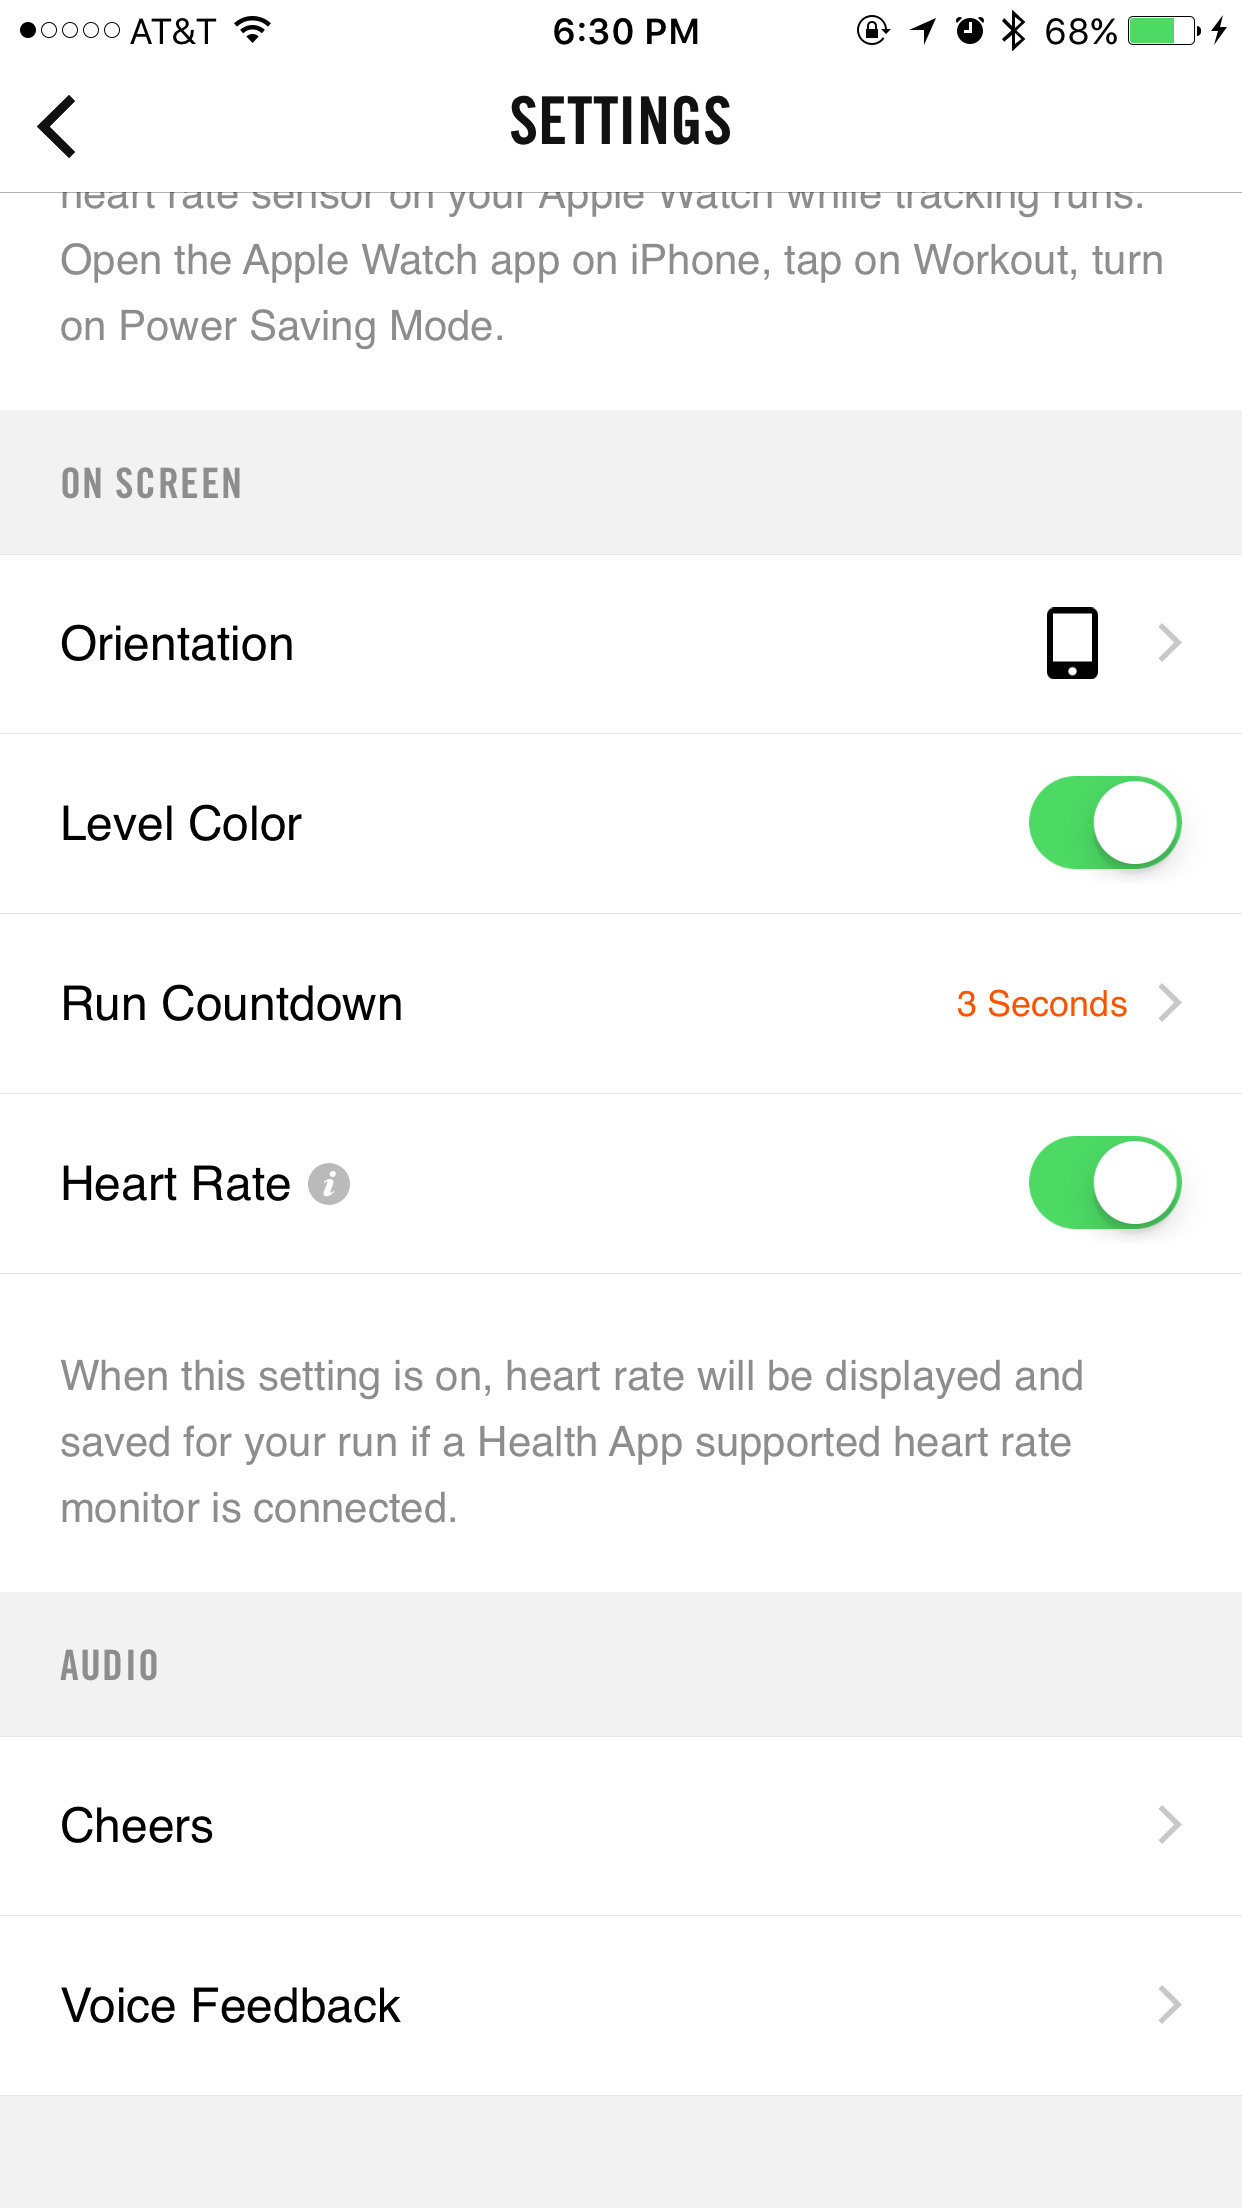 Nike Running App, Series 2 and Heart Rate Not Working | MacRumors Forums